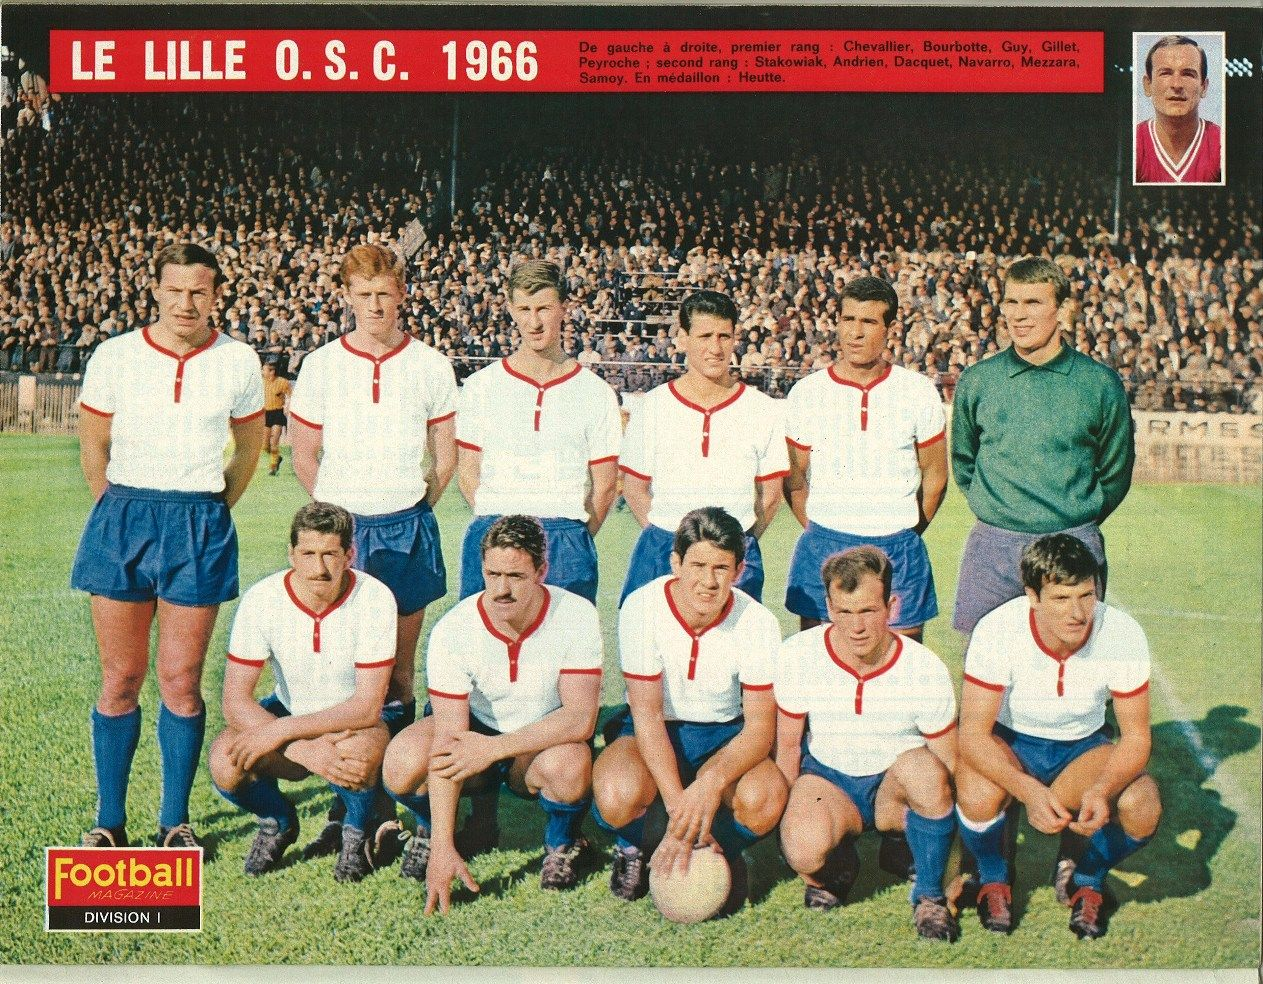 LILLE OSC 1966 archives equipes foot Pinterest Lille osc